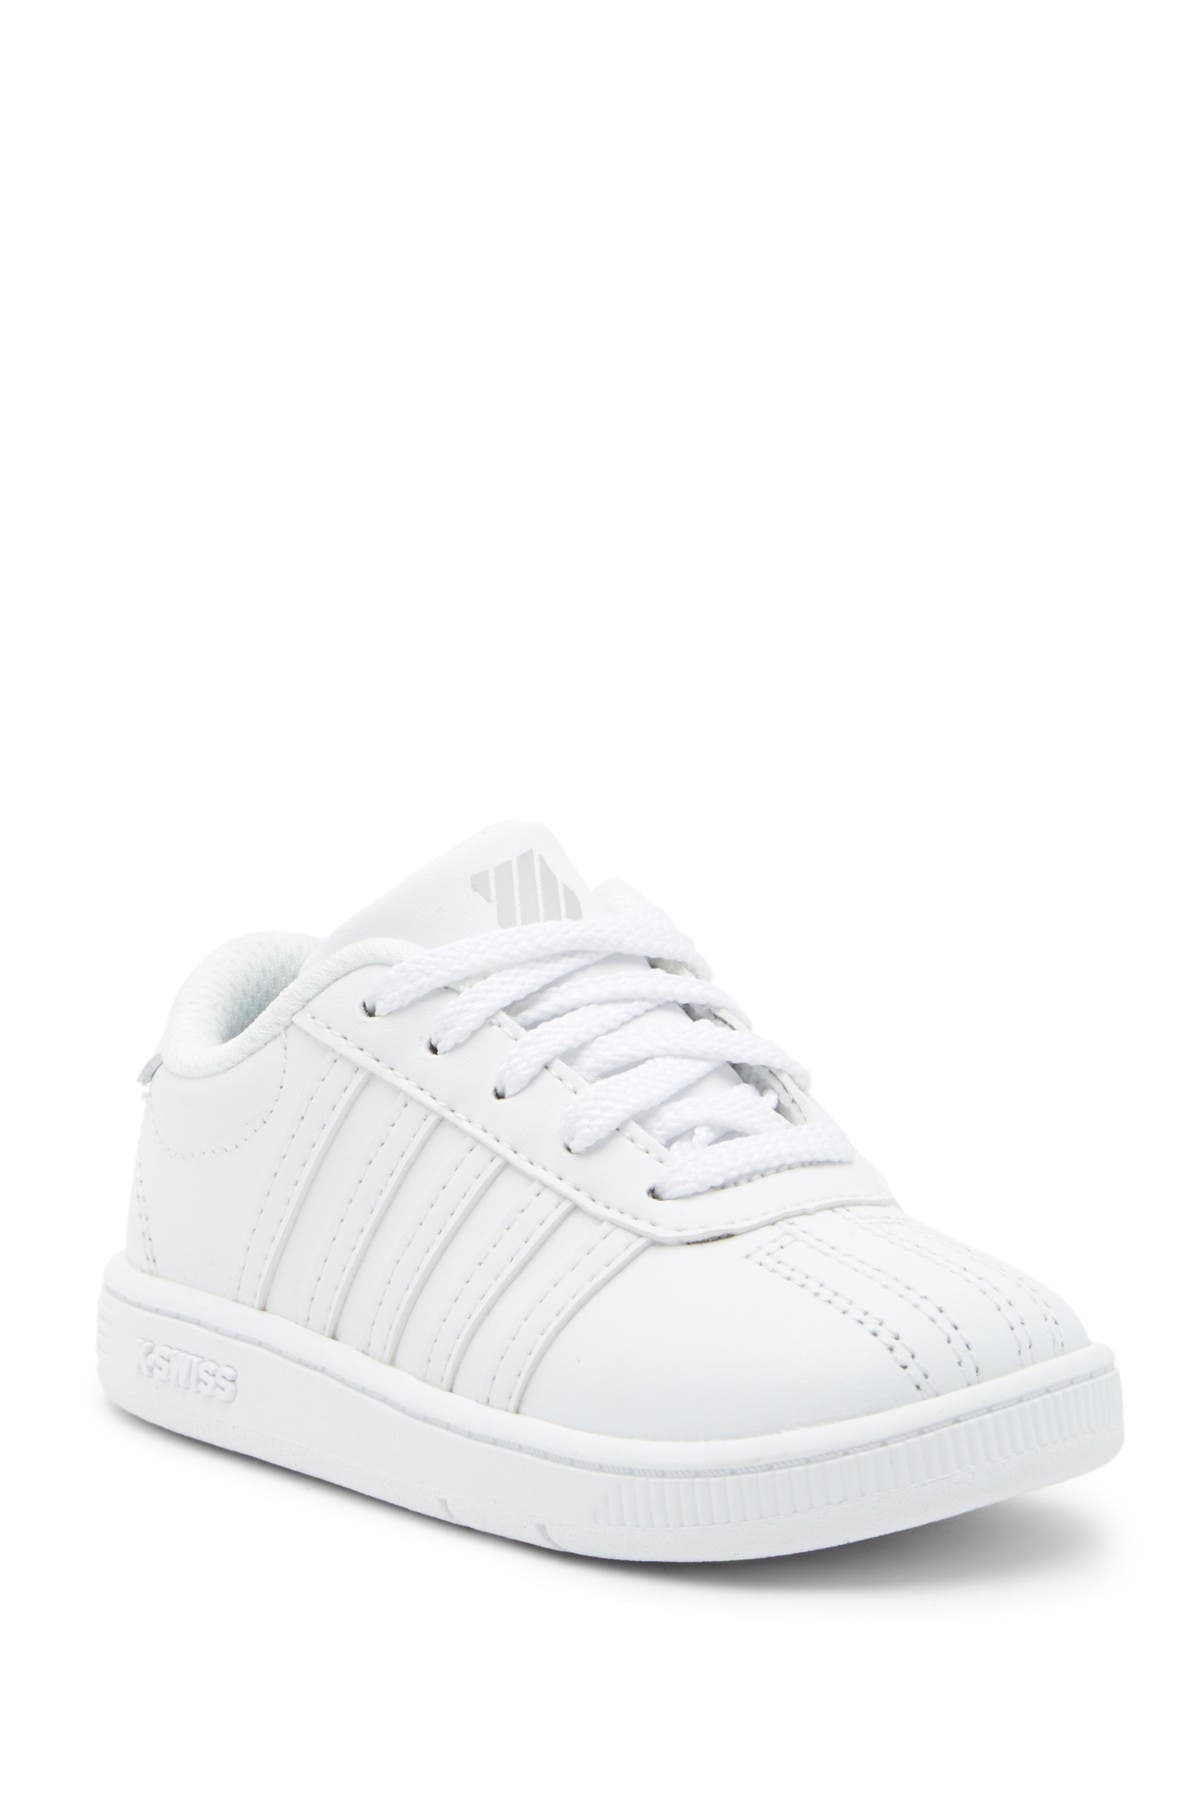 Image of K-Swiss Classic Pro Leather Sneaker